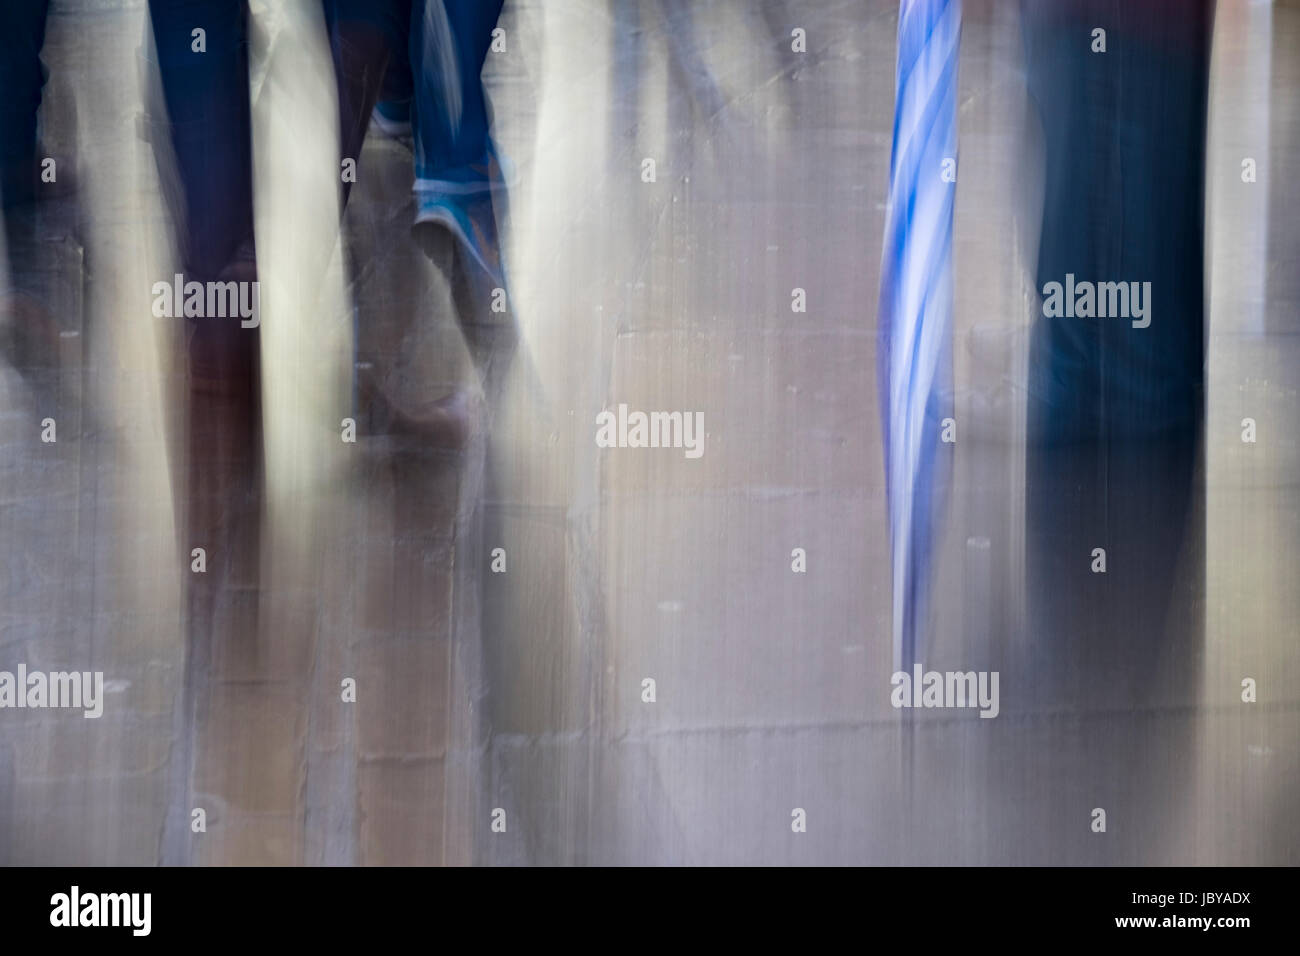 ICM, Intentional Camera Movement of shoppers in a busy town. - Stock Image